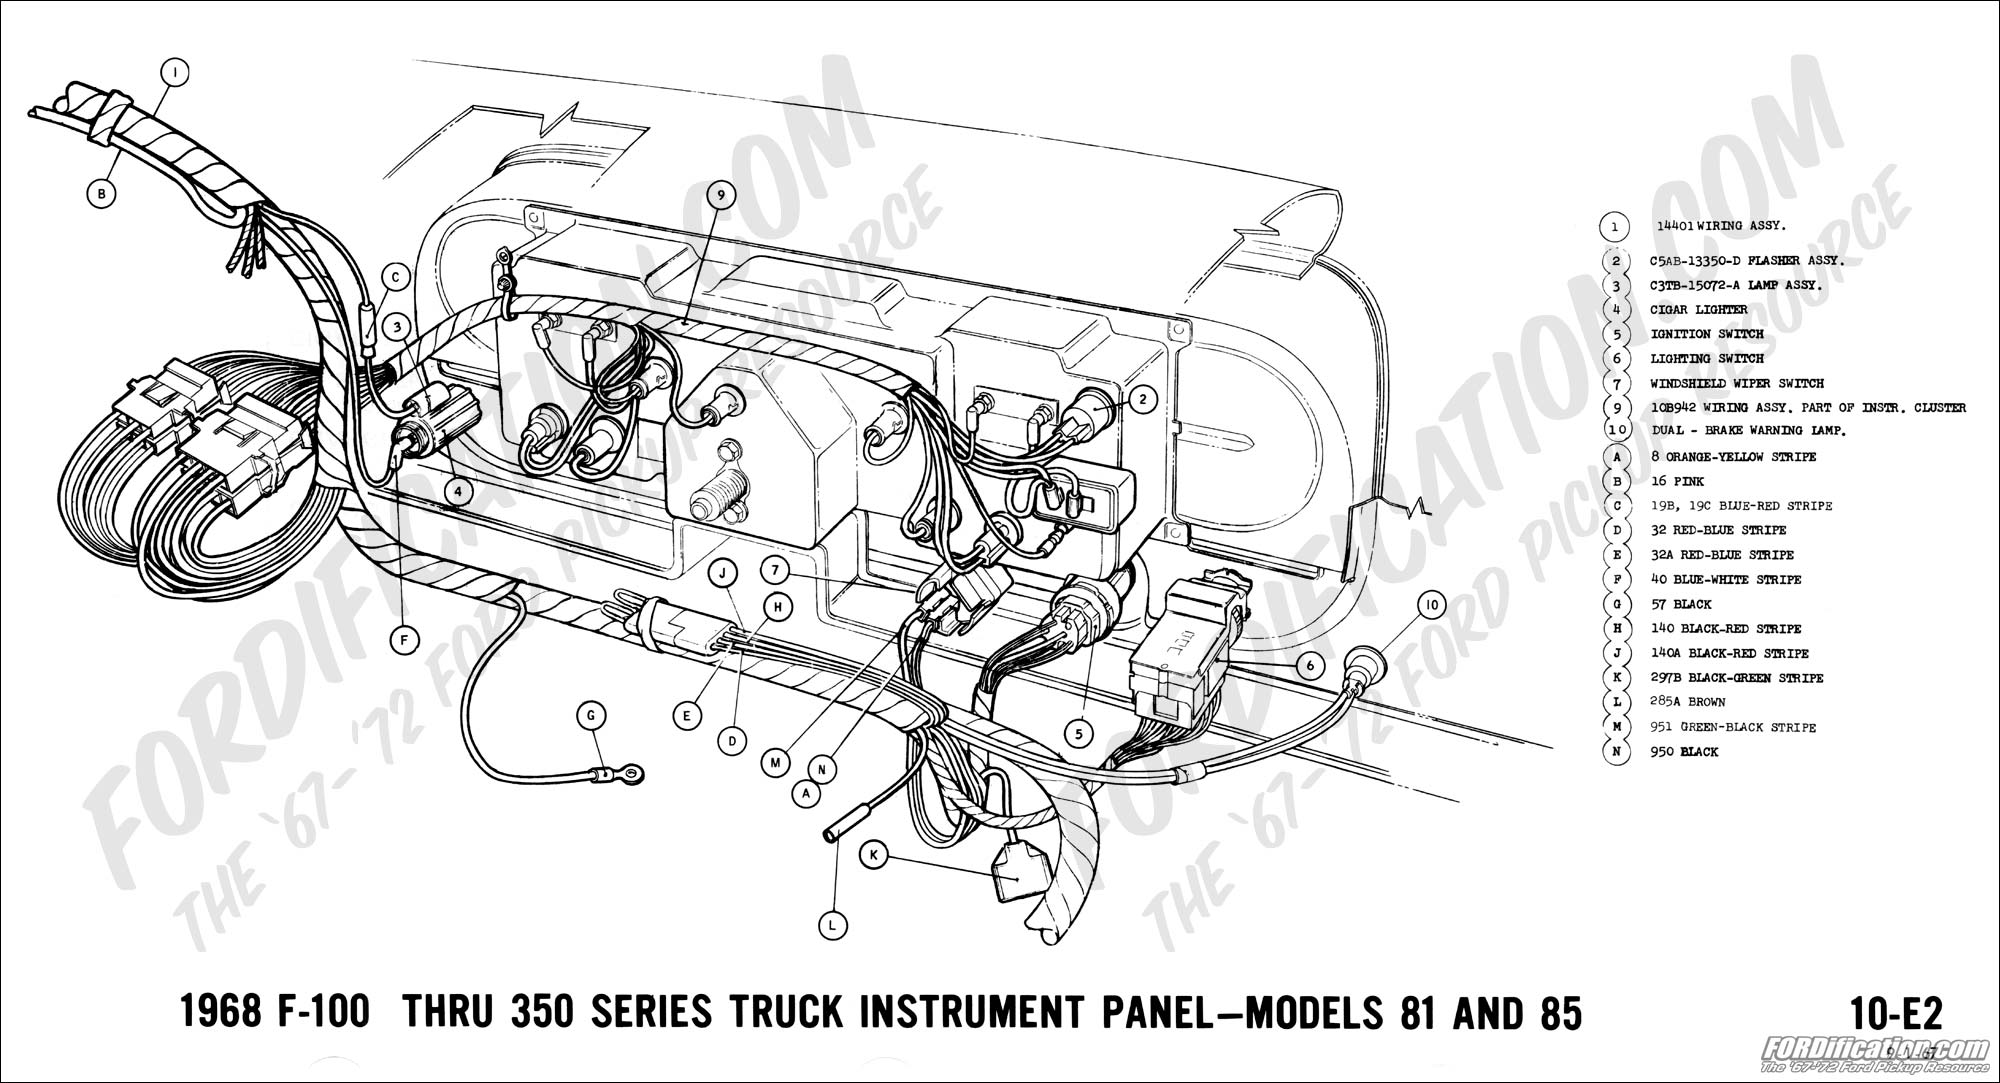 2010 ford f 250 turn signal flasher wiring diagram